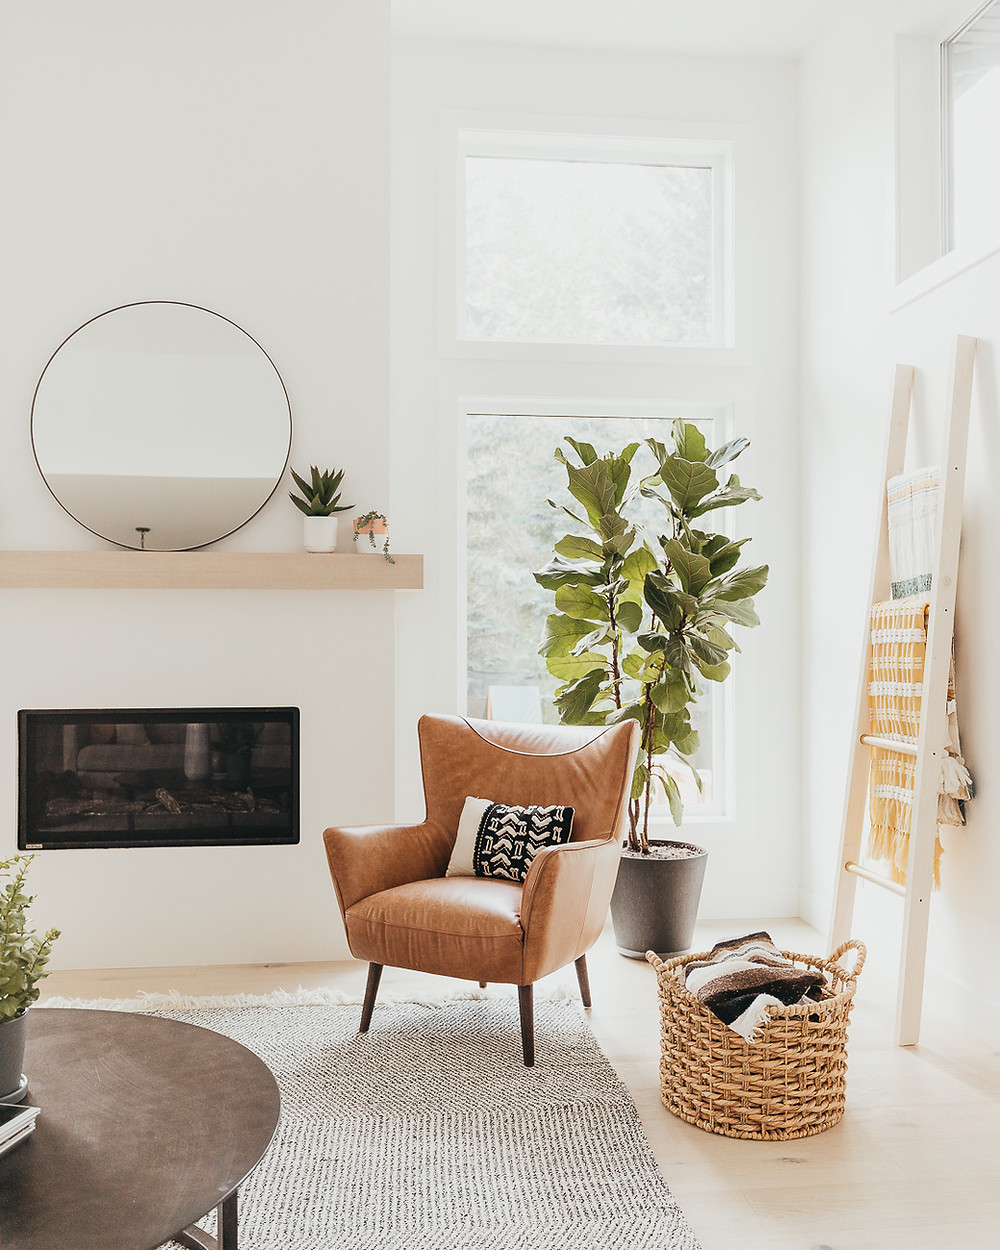 A white Scandinavian living room features light wood oak floors with a natural wool carpet, a brown leather chair, round metal coffee table, a wicker basket with a throw in it, a blanket ladder, a fiddle leaf fig in front of a large window and a linear fireplace with a light wood mantel holding a mirror and some plants.